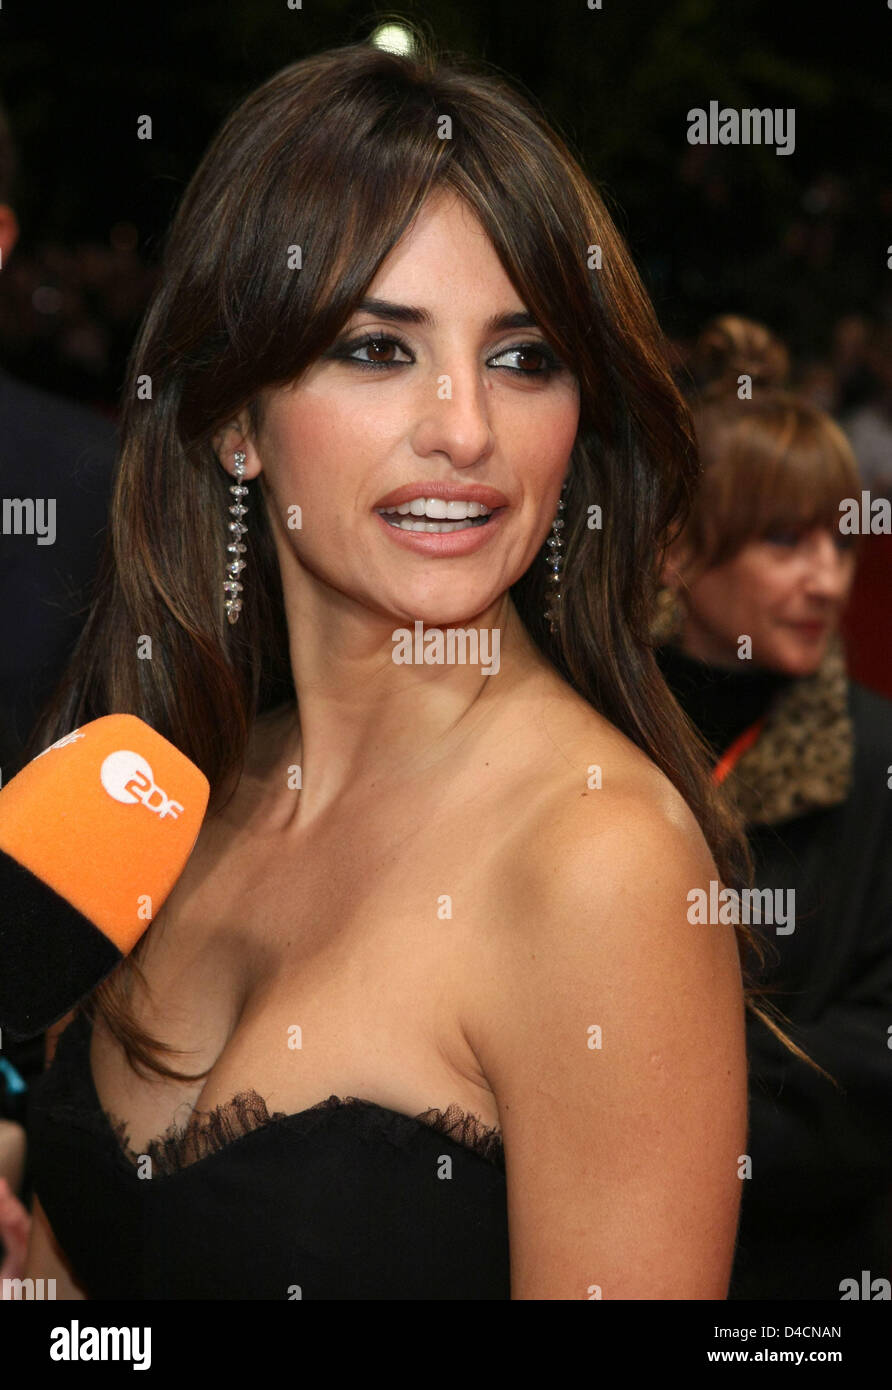 Spanish actress Penelope Cruz gives an interview as she arrives for the premiere of her film 'Elegy' at - Stock Image